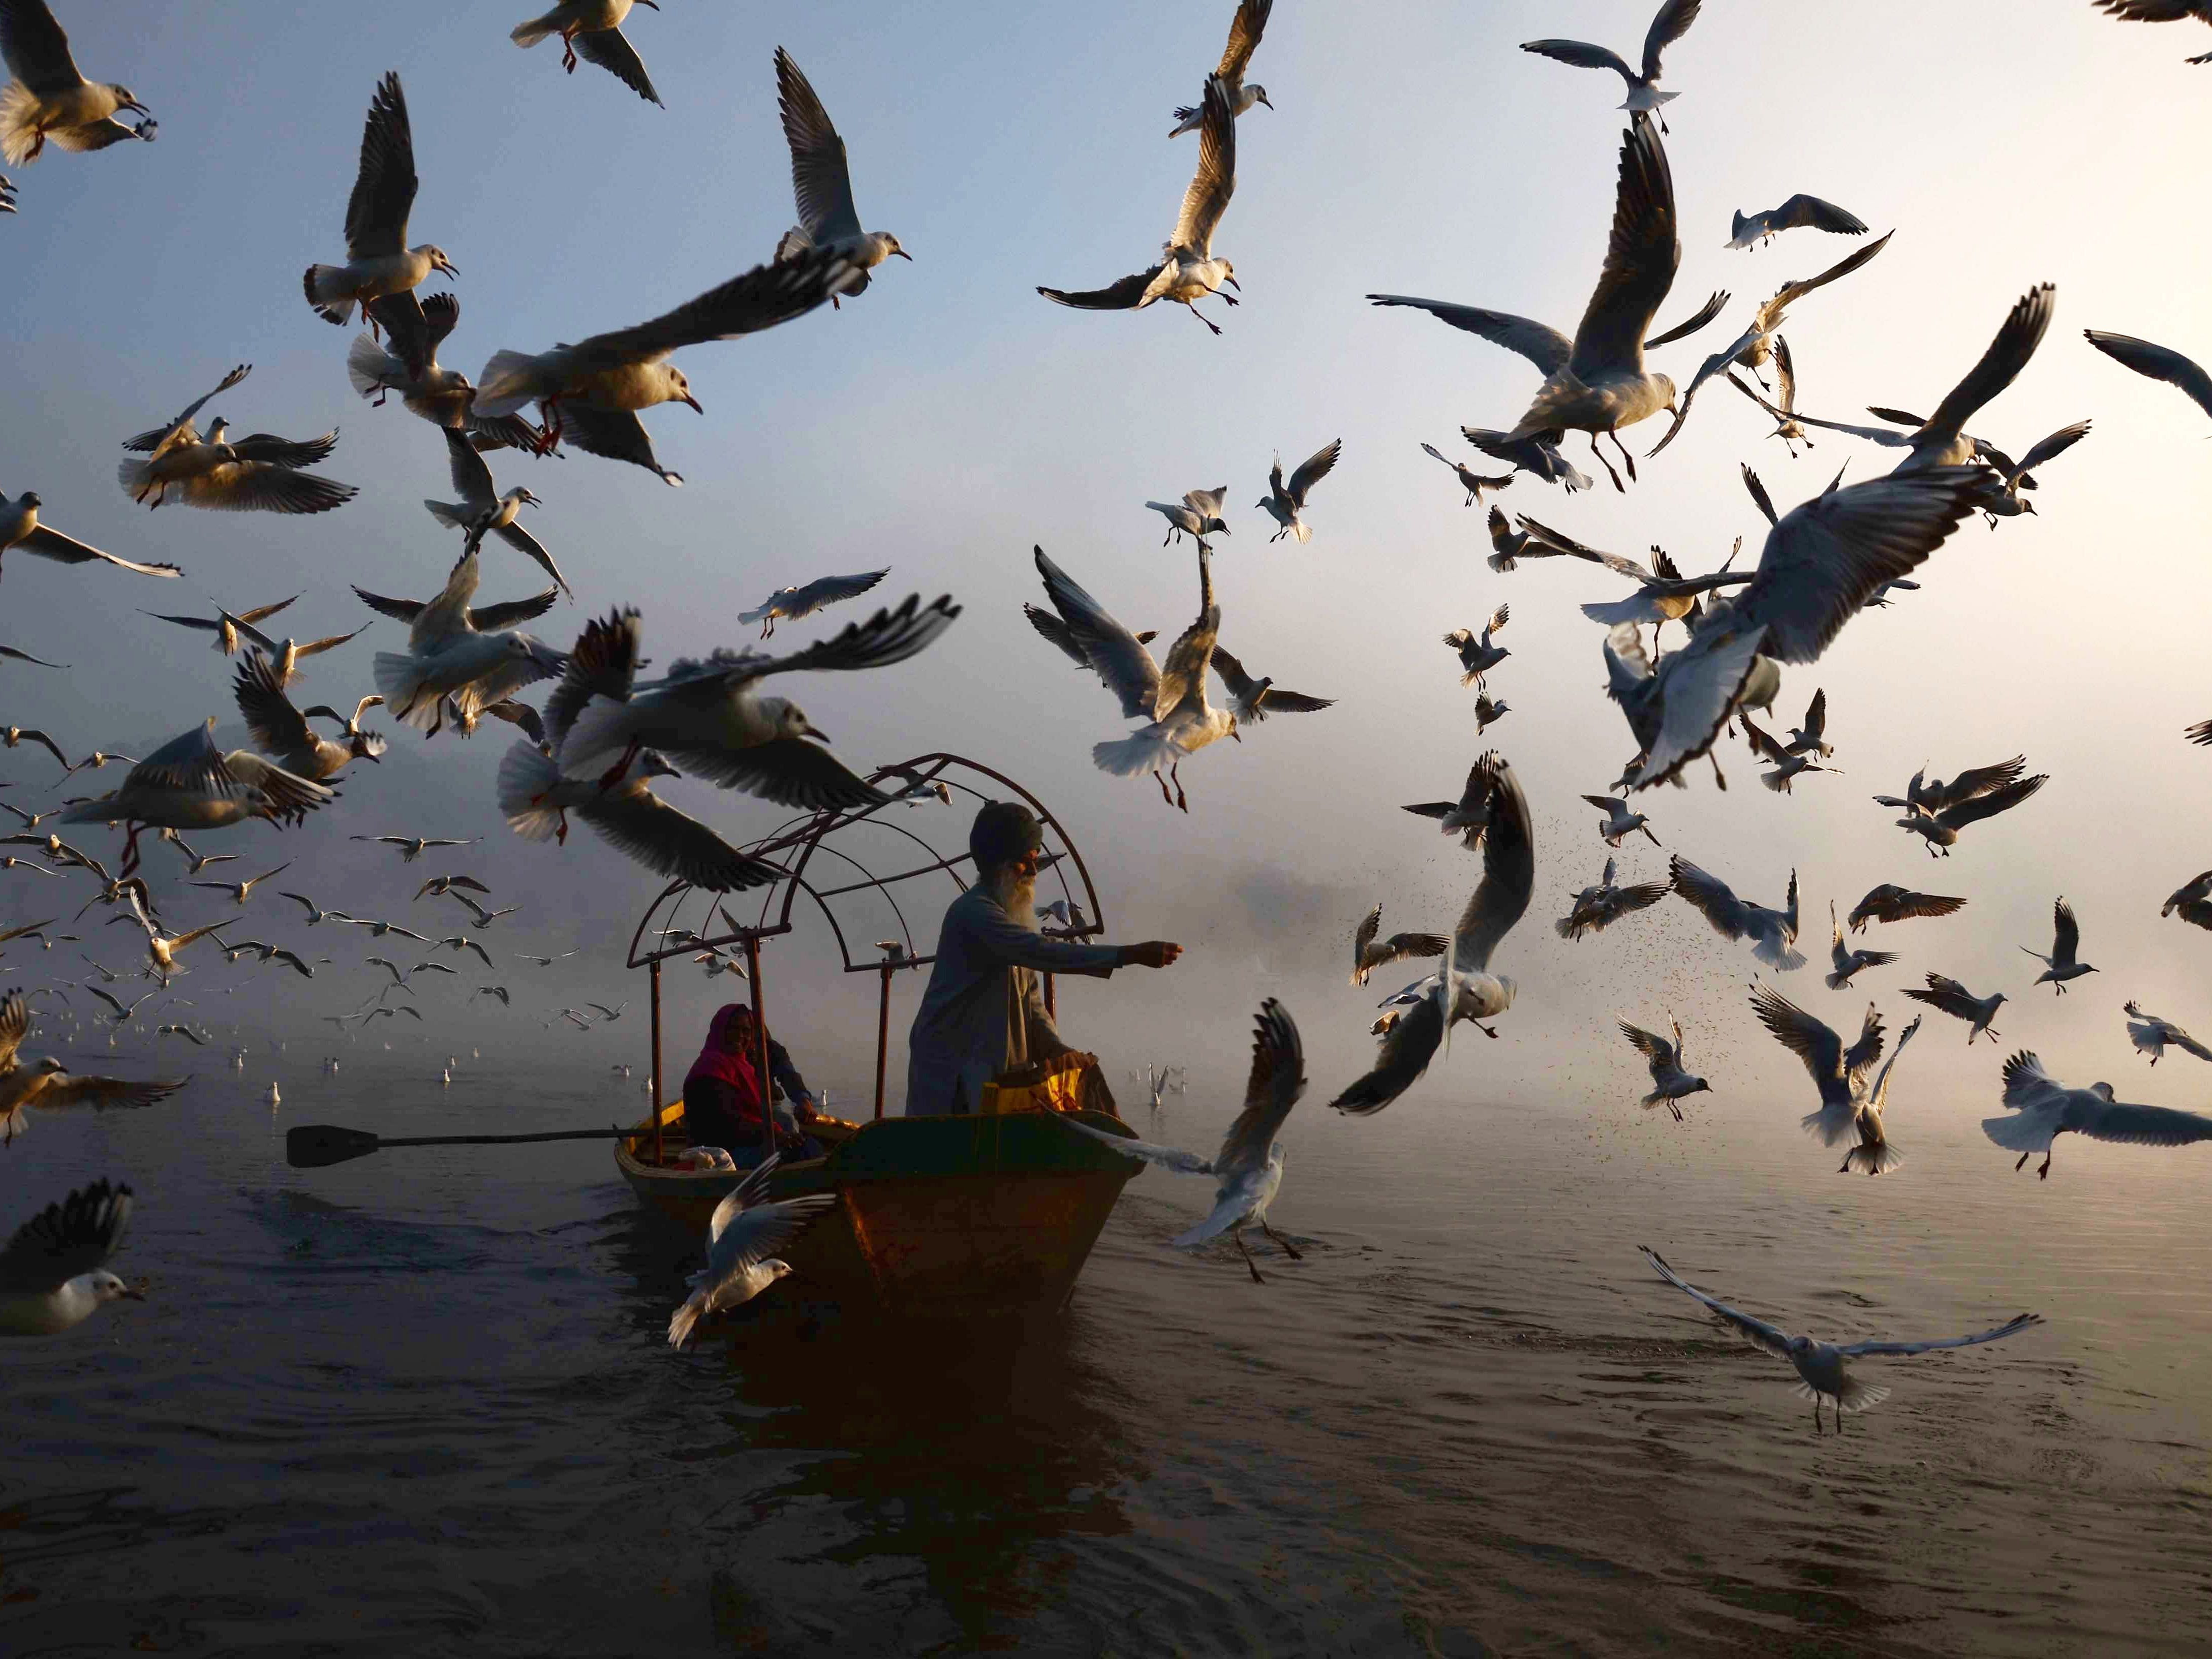 An Indian man feeds migratory seagulls at Narmada River early in the morning in Jabalpur in the Indian state of Madhya Pradesh on January 29, 2019.